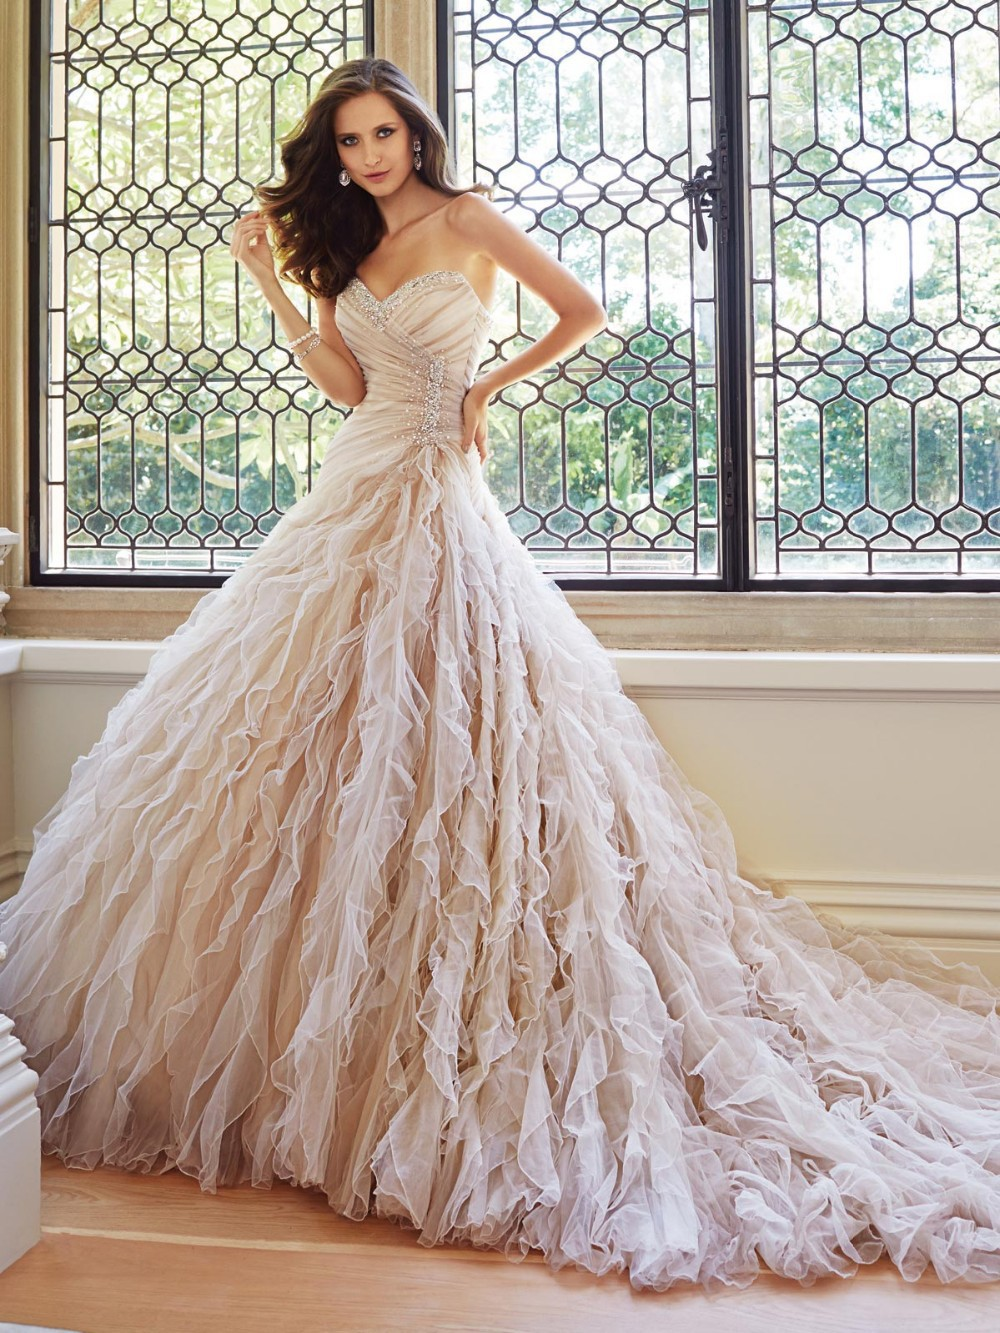 expensive wedding dress Aliexpress com Buy New Sleeveless Mermaid Beadings Crystals Expensive Wedding Dress from Reliable expensive wedding dresses suppliers on VivinTong